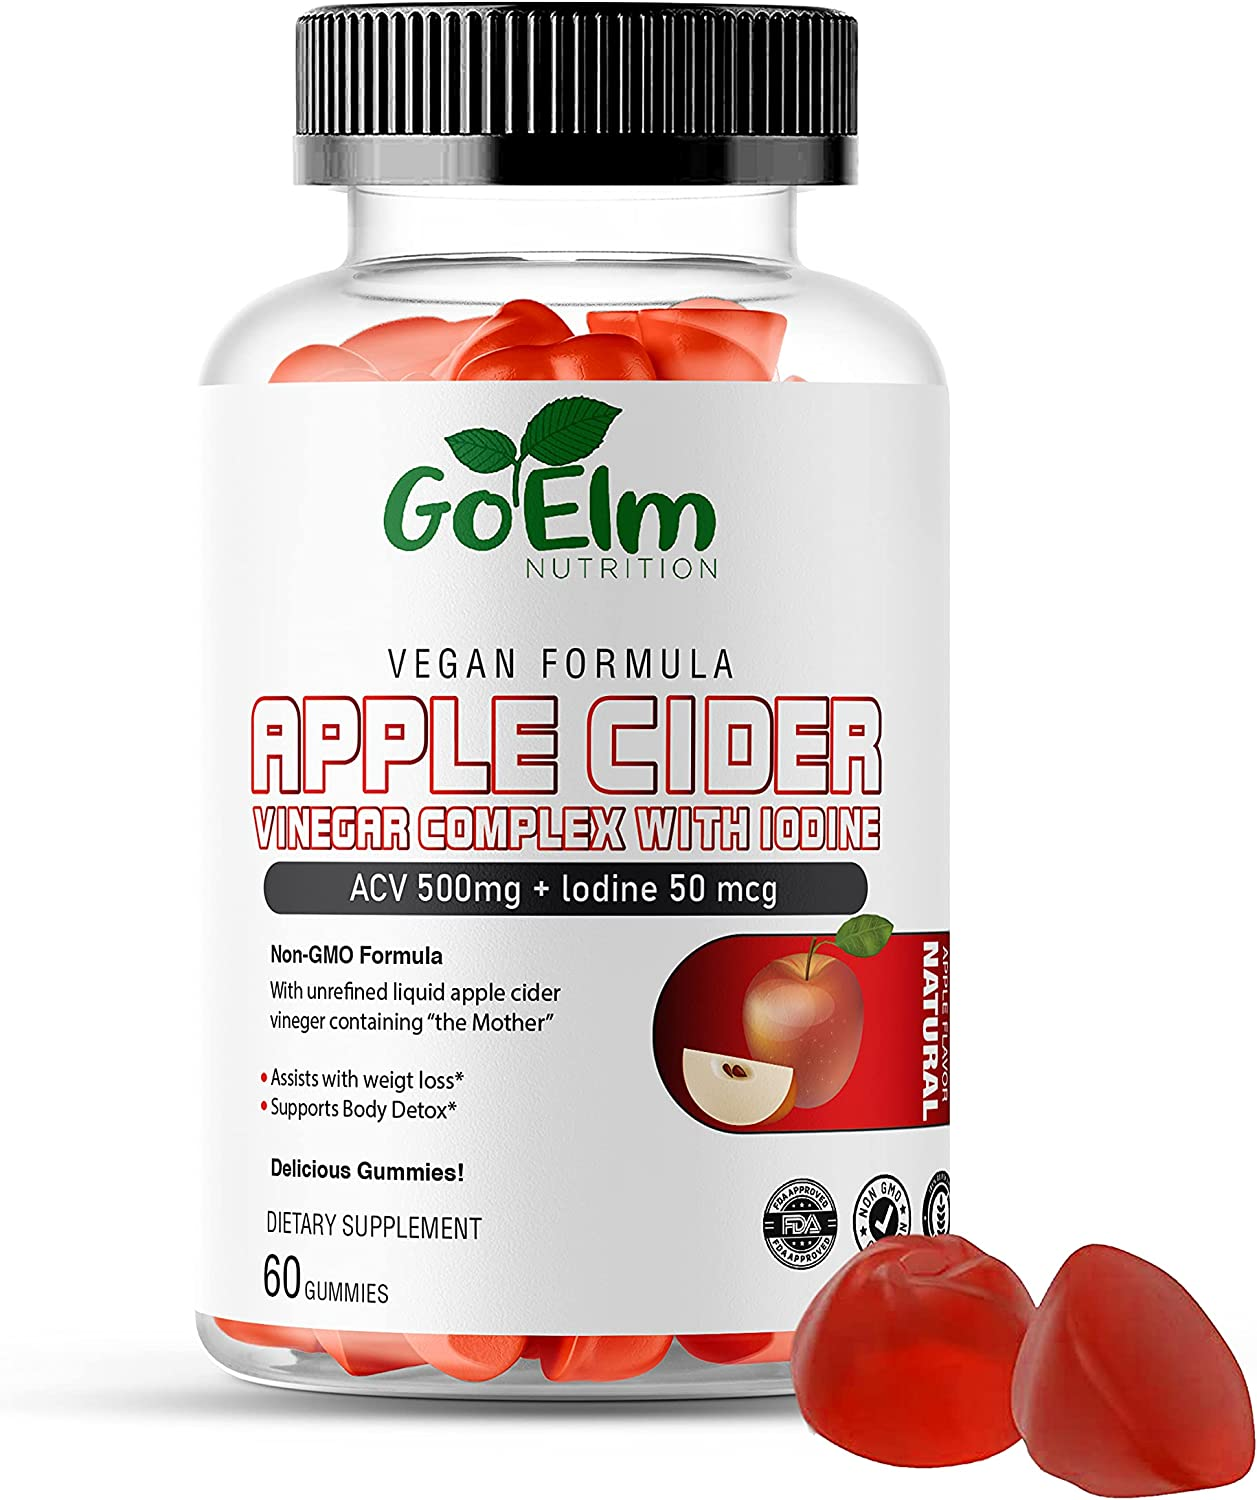 Apple Cider Vinegar Complex Gummies Vitamin by Go Elm Nutrition (60 Gummies | 500 mg) with 50 mcg Iodine | Non-GMO Vegan Formula Containing The Mother | Vitamin B6, B12, Beetroot, and Pomegranate